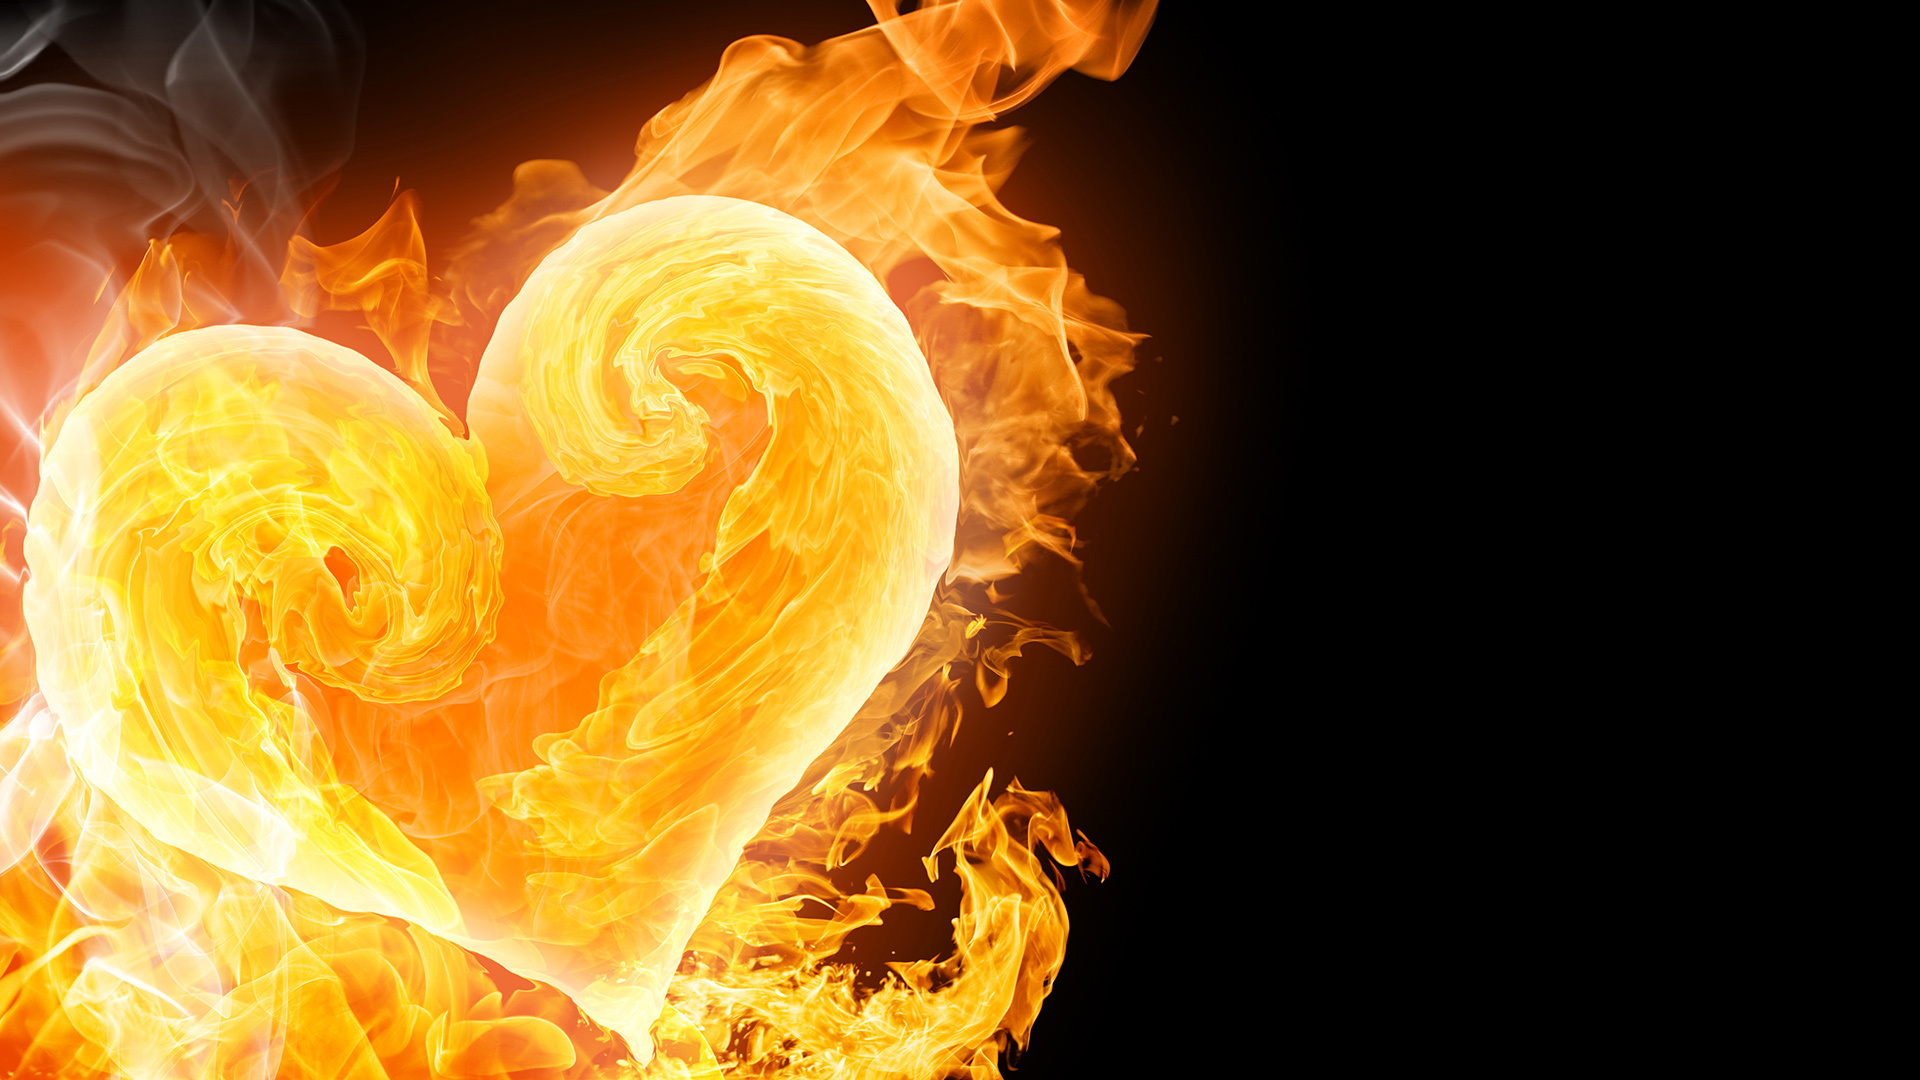 Burning Love Hd Wallpapers: DayBreaks For 01/24/13 – Discovering Fire